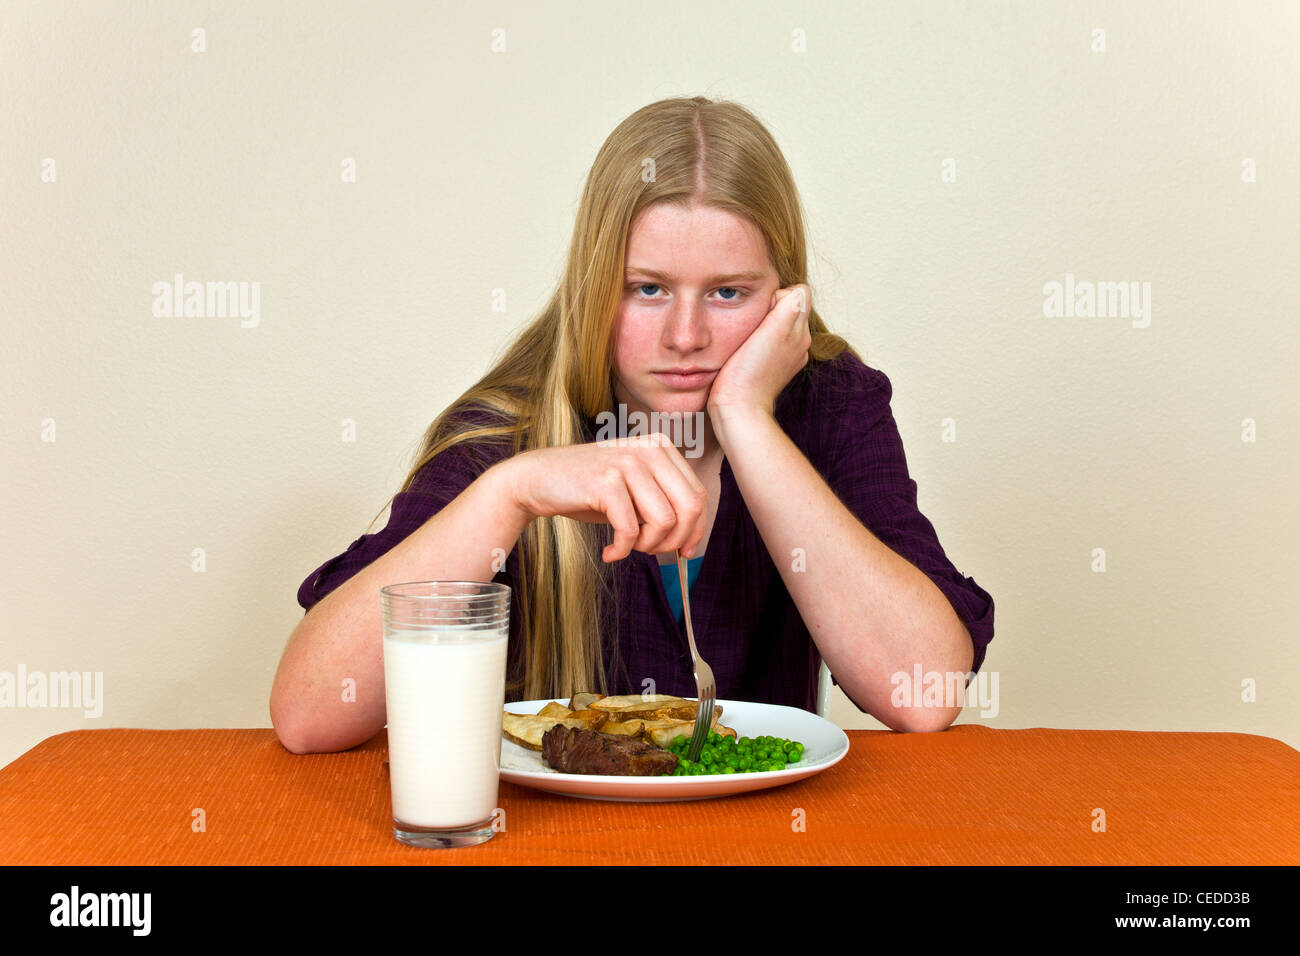 Strong willed stubborn Teenage girl Sitting at table unhealthy attitude towards food dislikes won't eat her - Stock Image